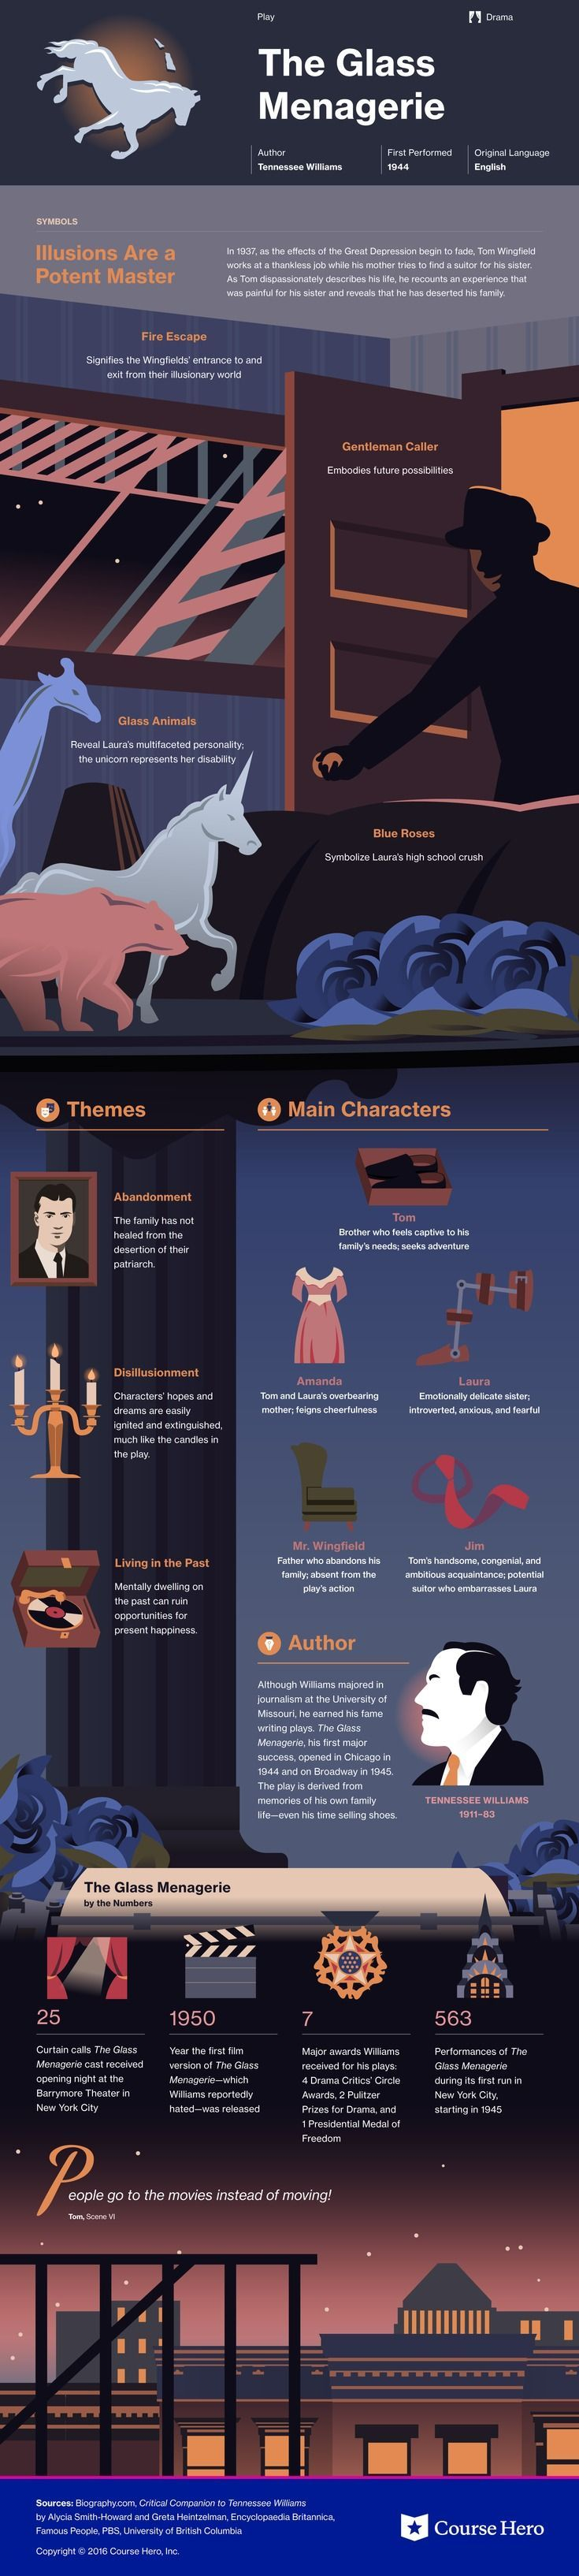 The Glass Menagerie Infographic   Course Hero